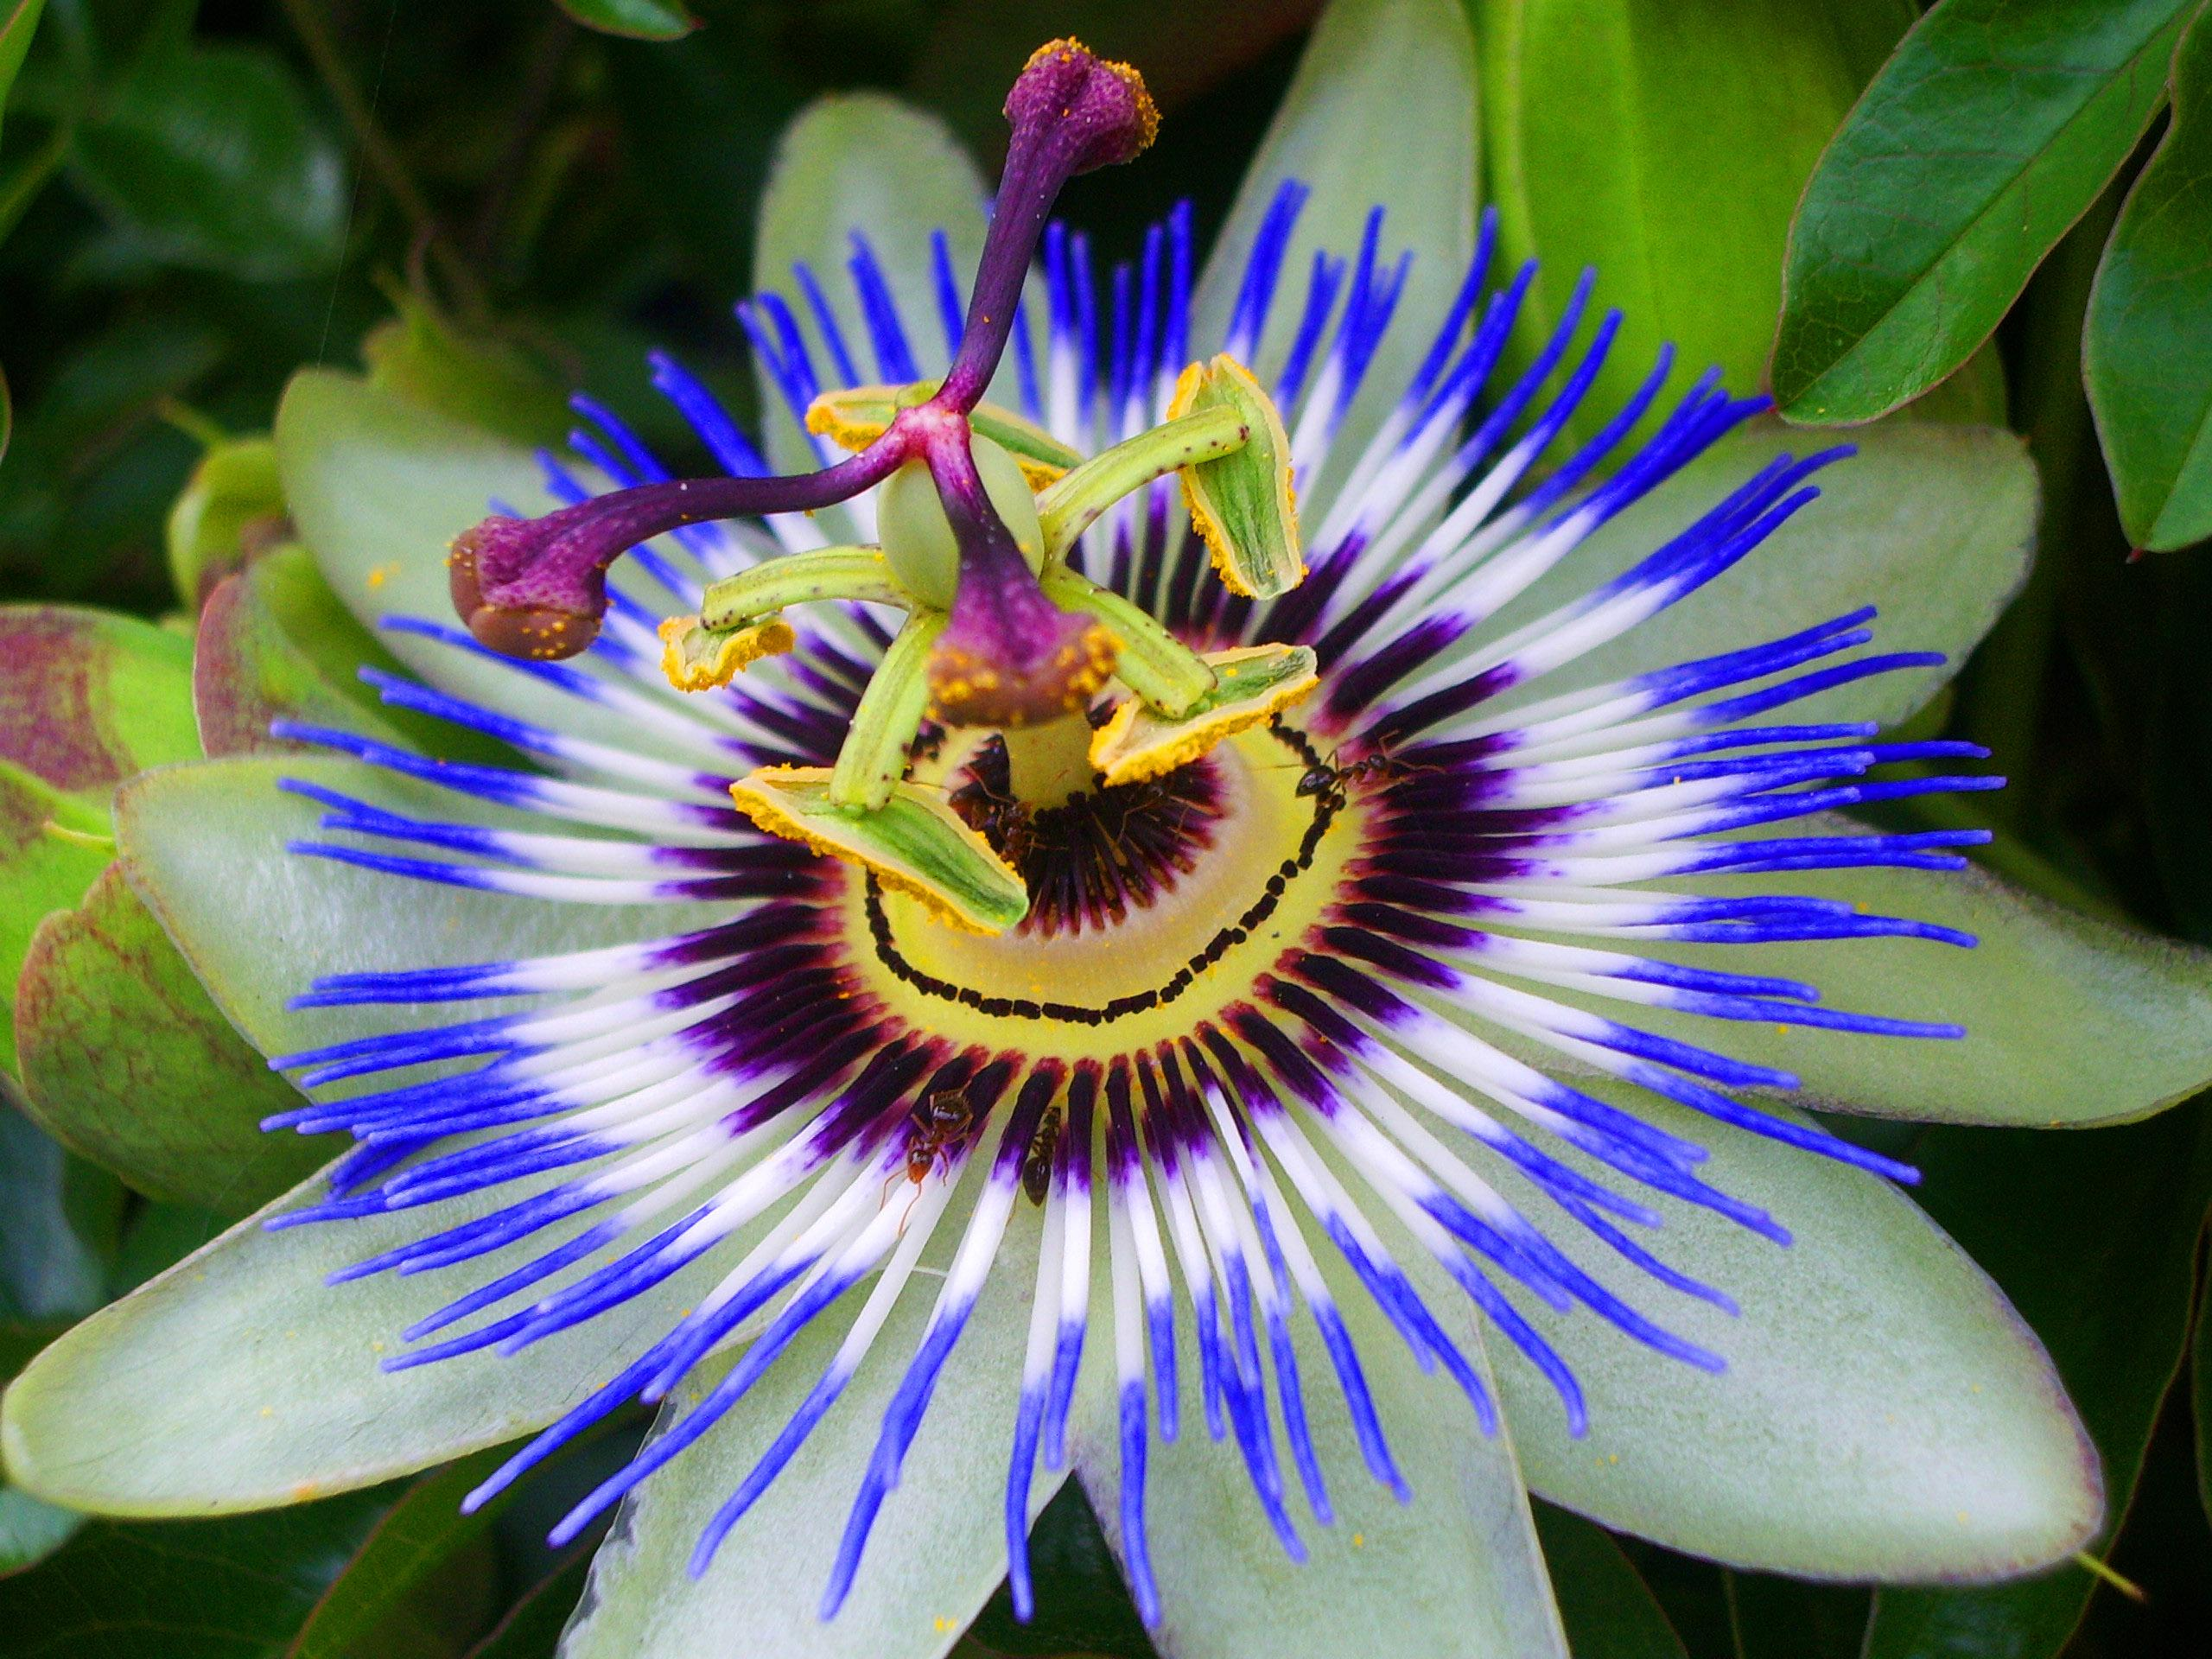 2560x1920 - Passion Flower Wallpapers 5